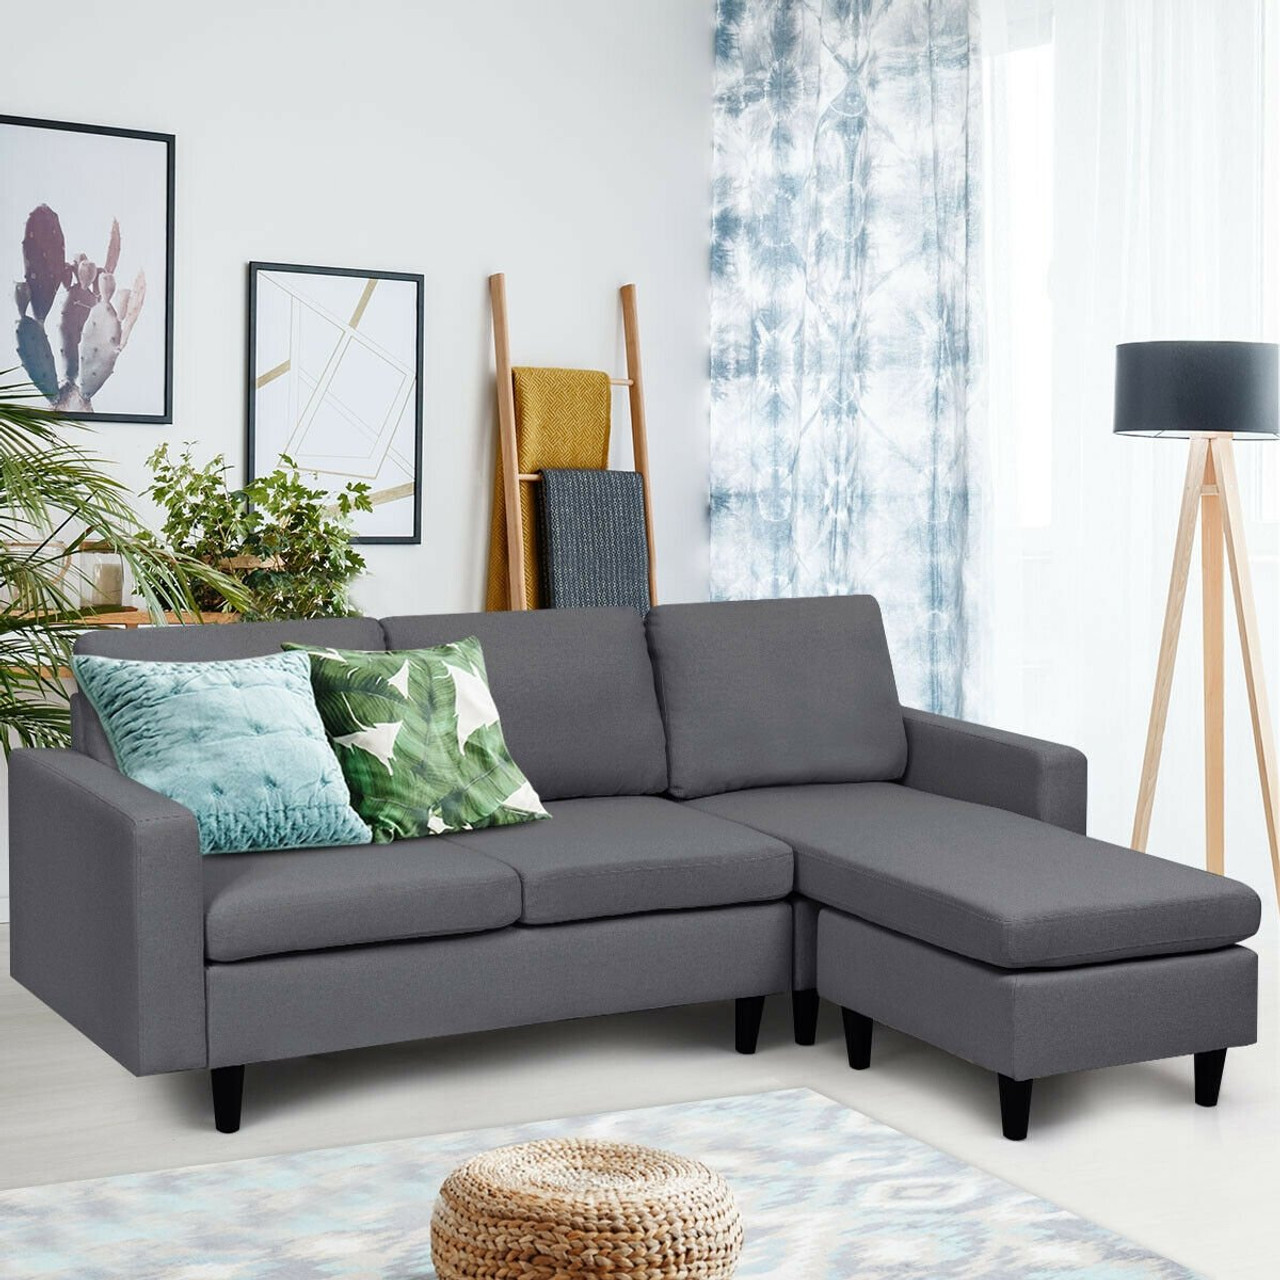 Cw Hw65239sh Convertible Sectional L Shaped Couch With Reversible Chaise Dark Gray